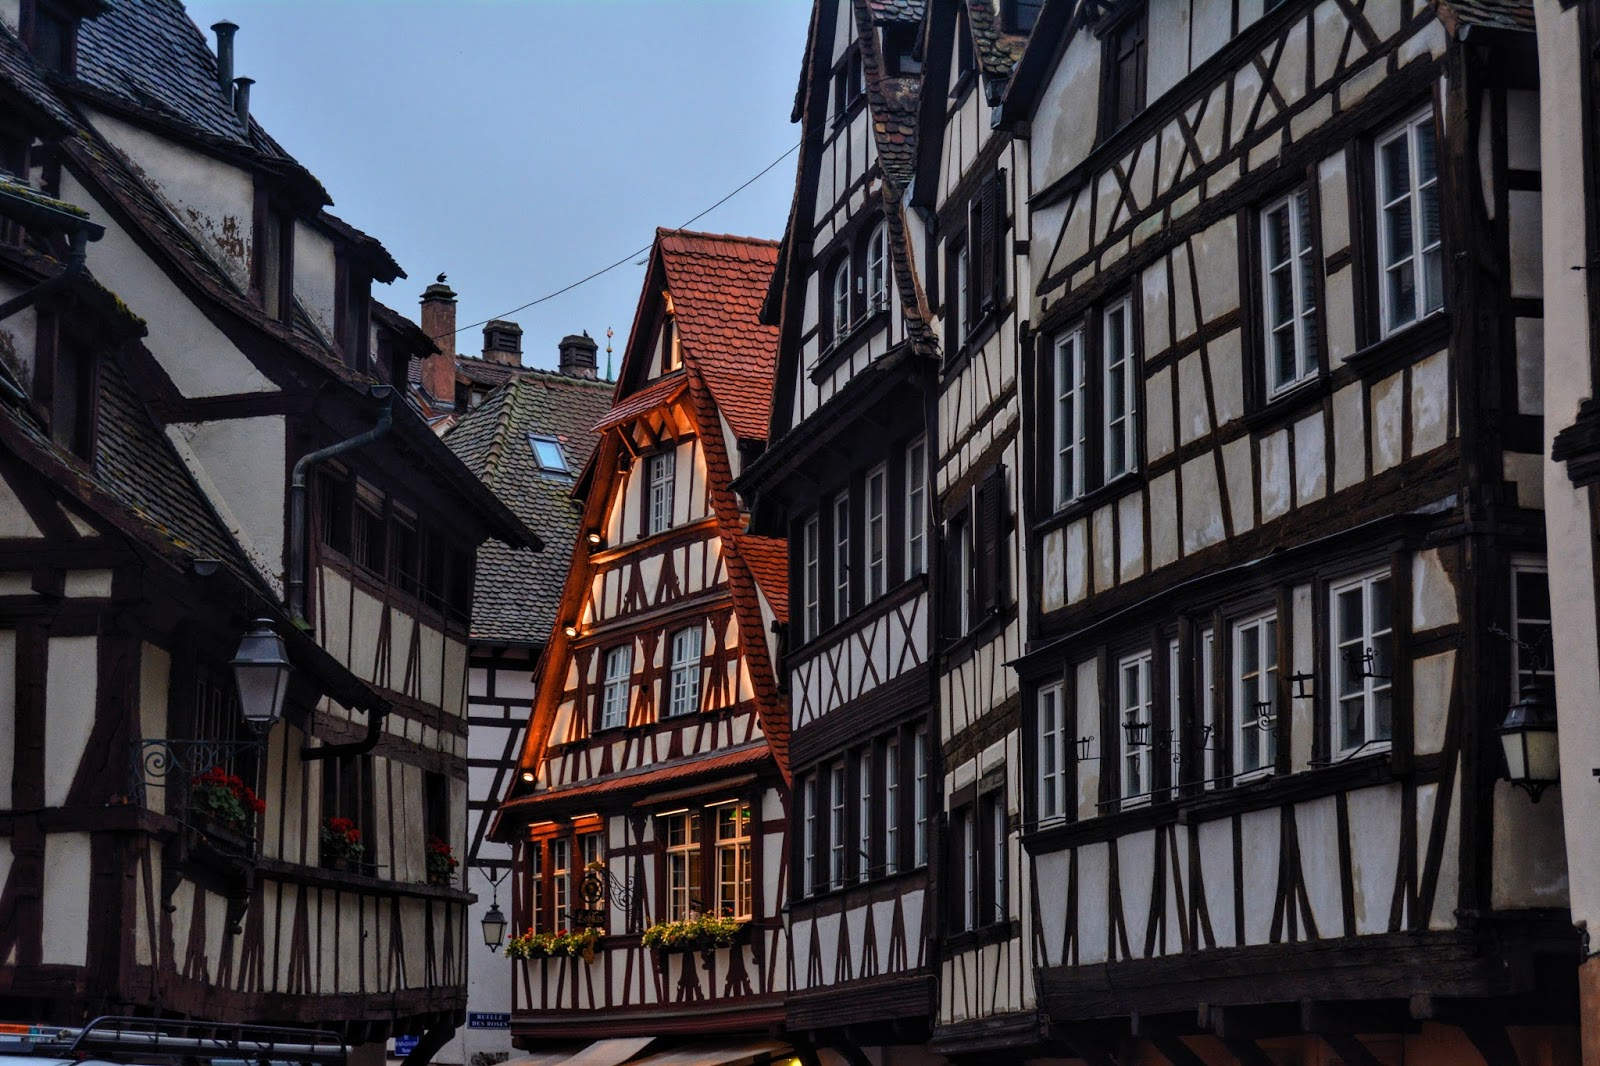 This is a photo of brown and black timbered houses in Strasbourg, France from the post 'How to plan Your Eurotrip'